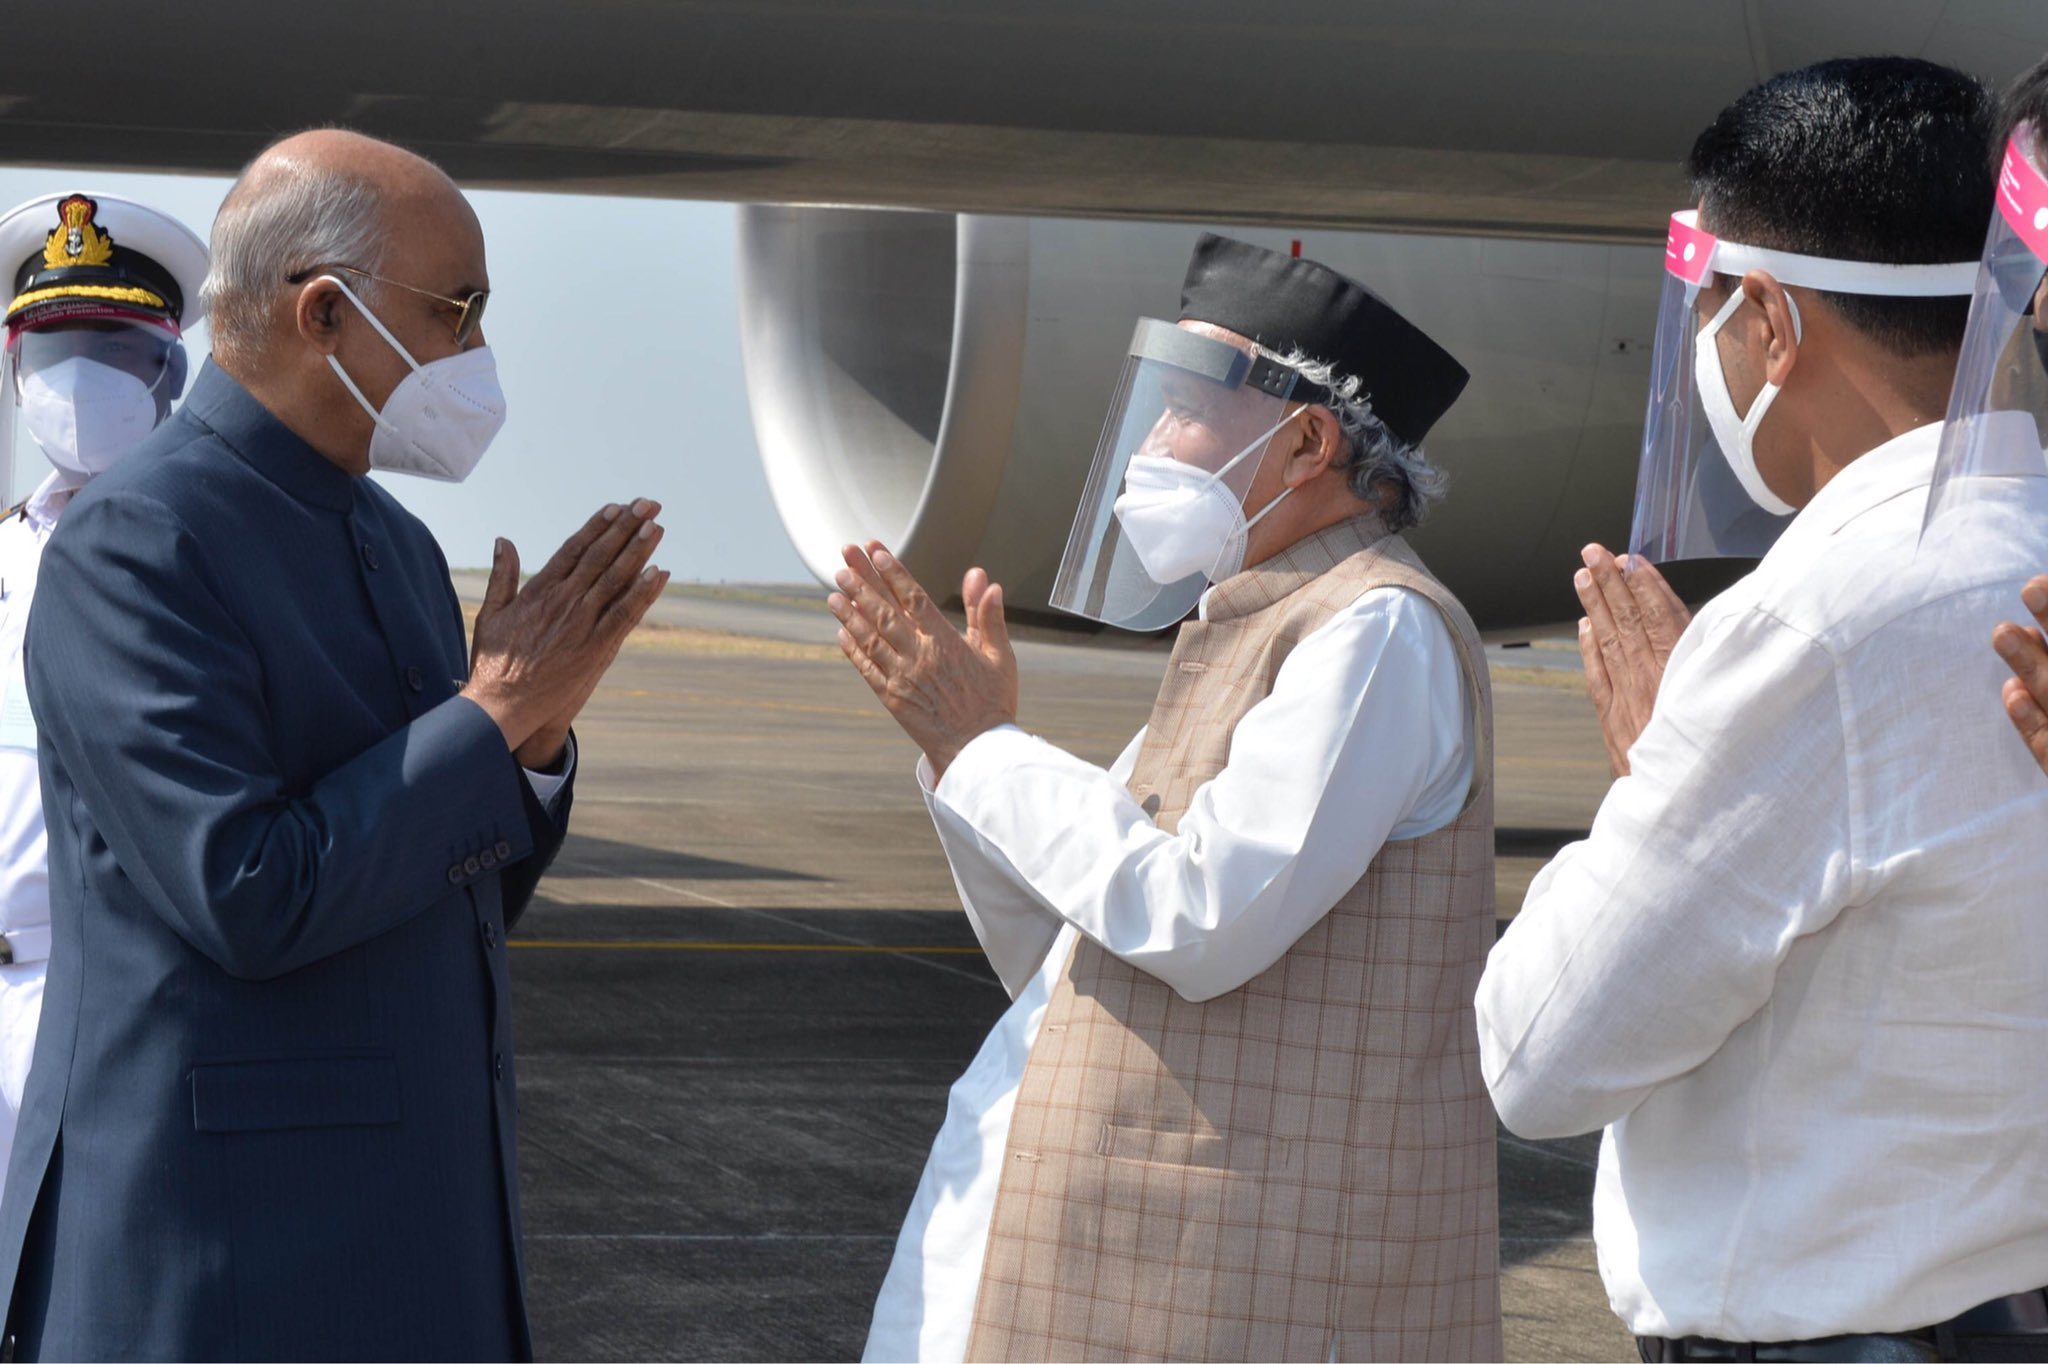 President Ram Nath Kovind arrived in Goa as part of his two-day visit, during which he will attend Goa's 60th Liberation Day celebrations.